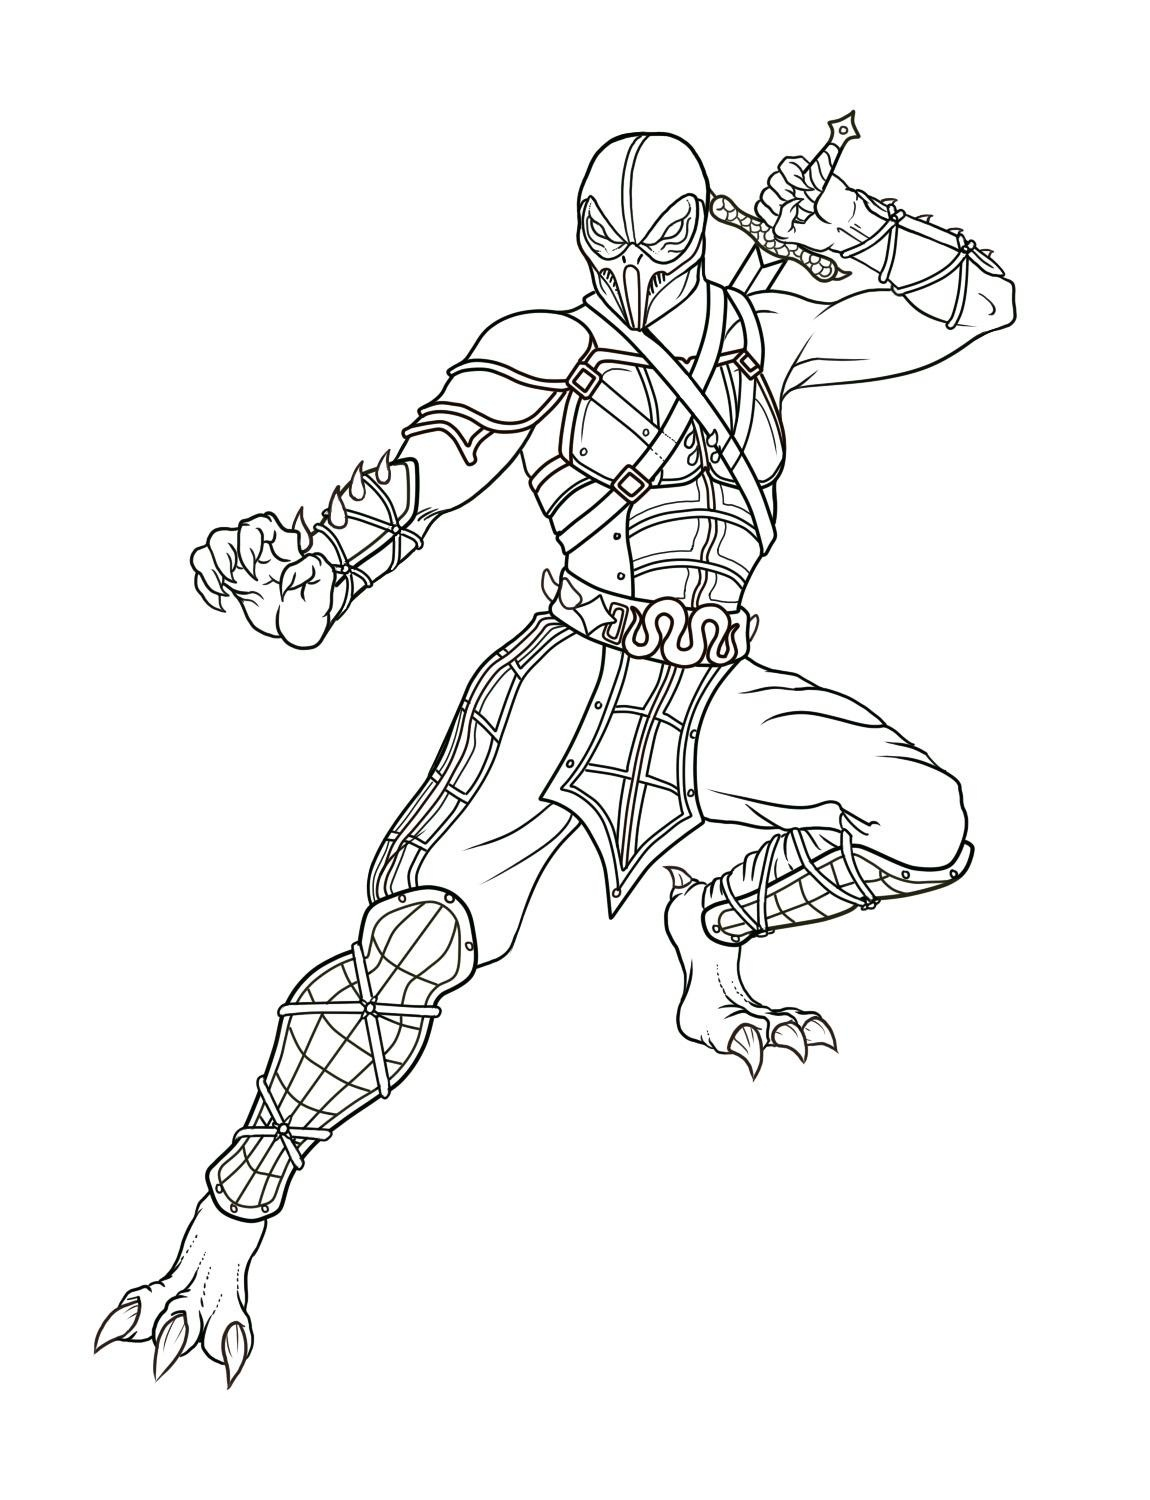 1150x1500 Sub Zero Coloring Pages Download And Print For Free